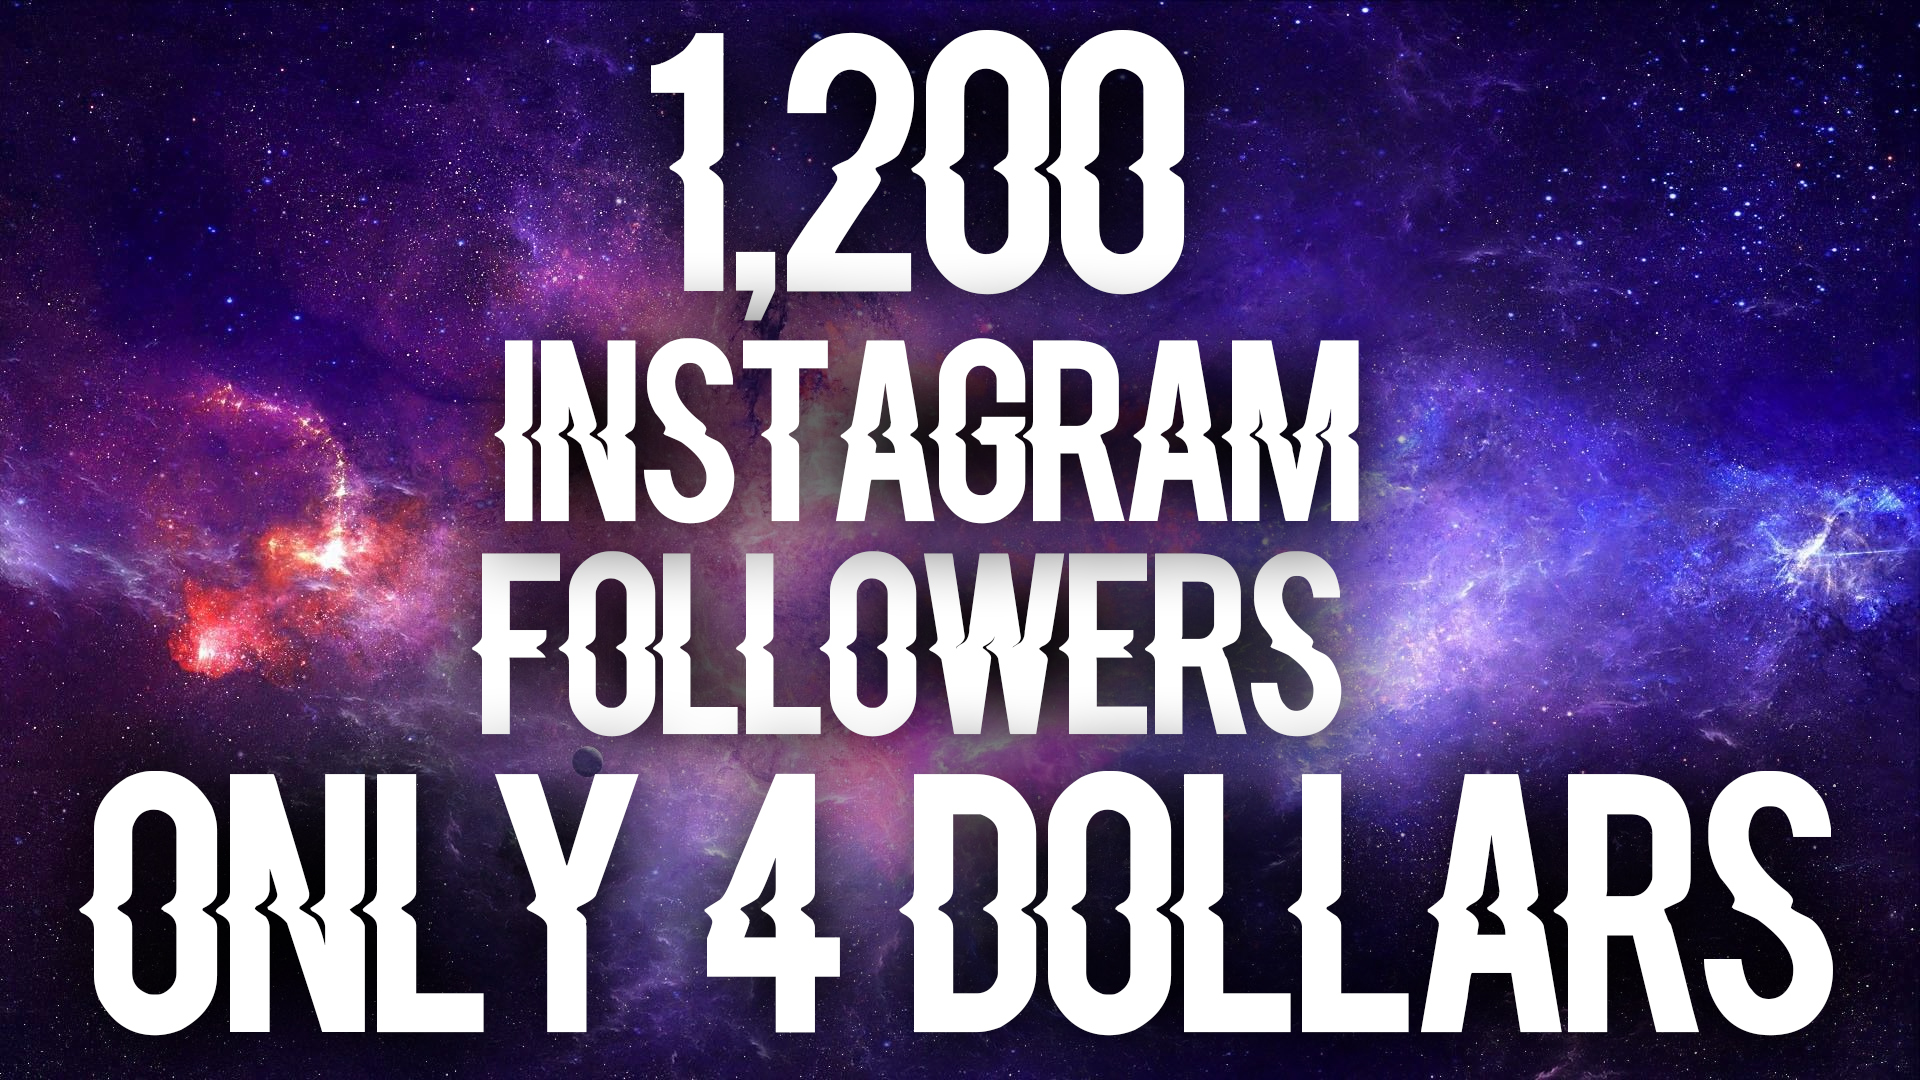 give you 1,200 insta. followers